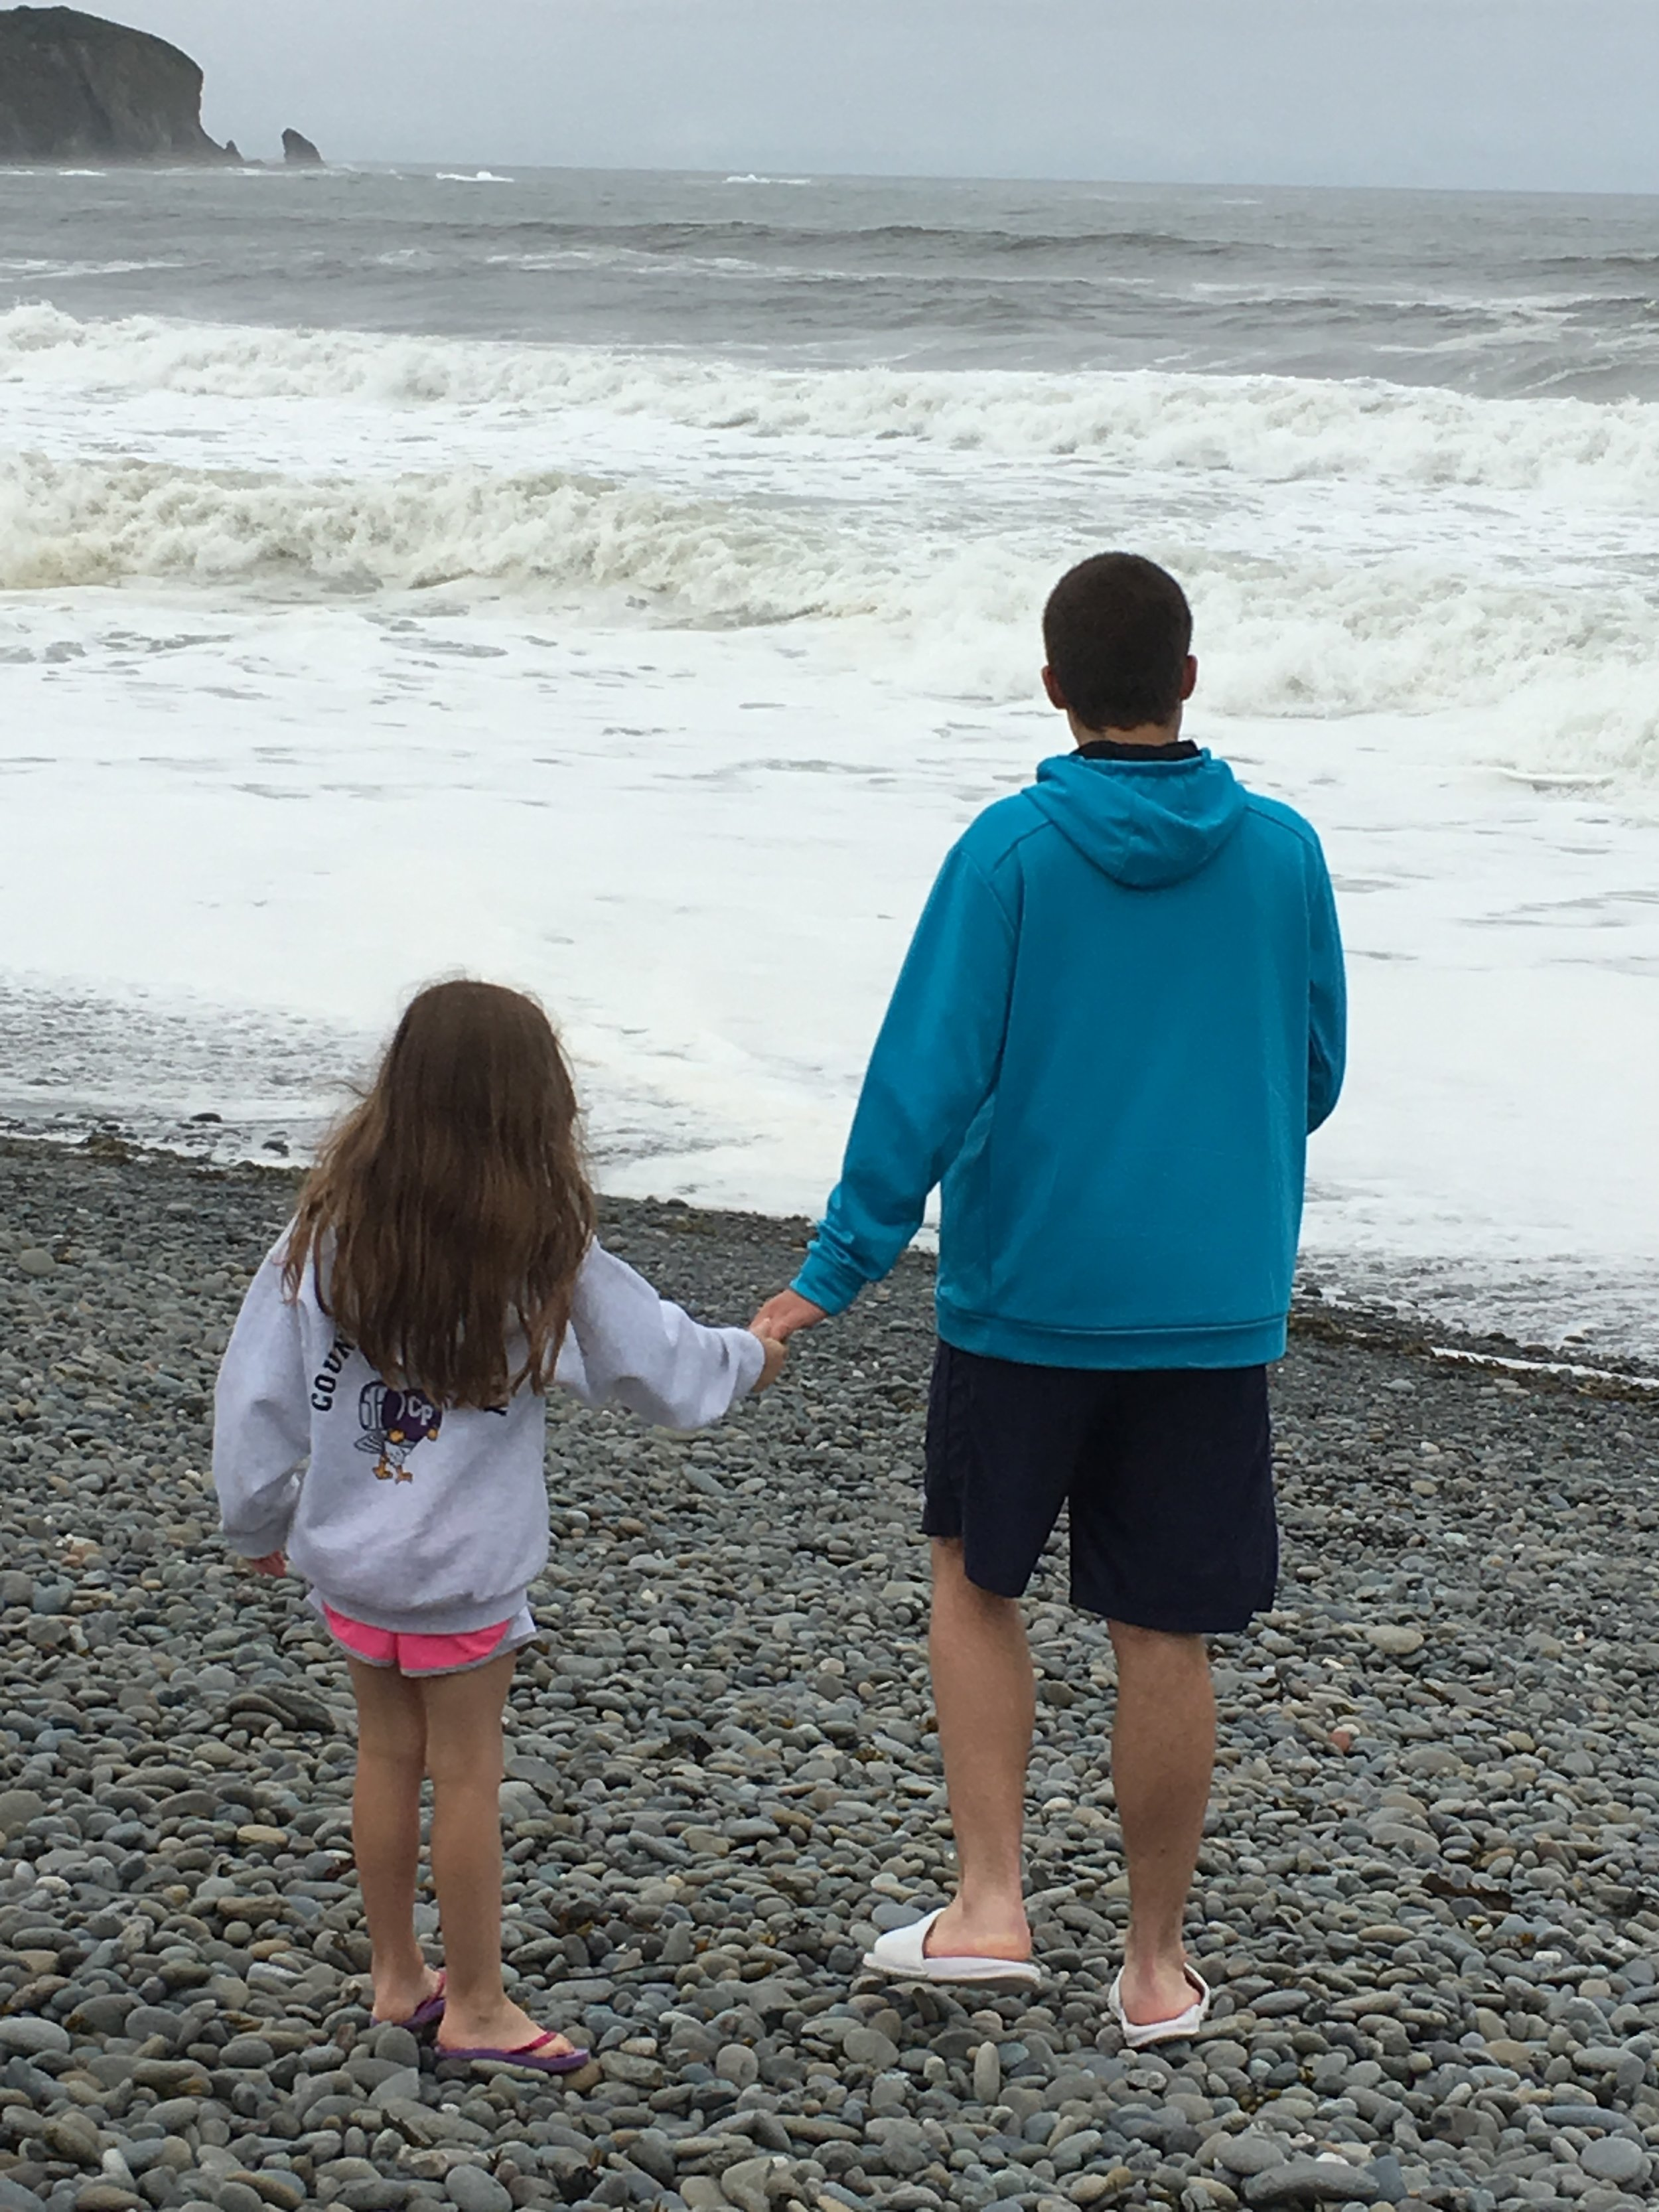 Marcus and his youngest sister Sarah at the beach